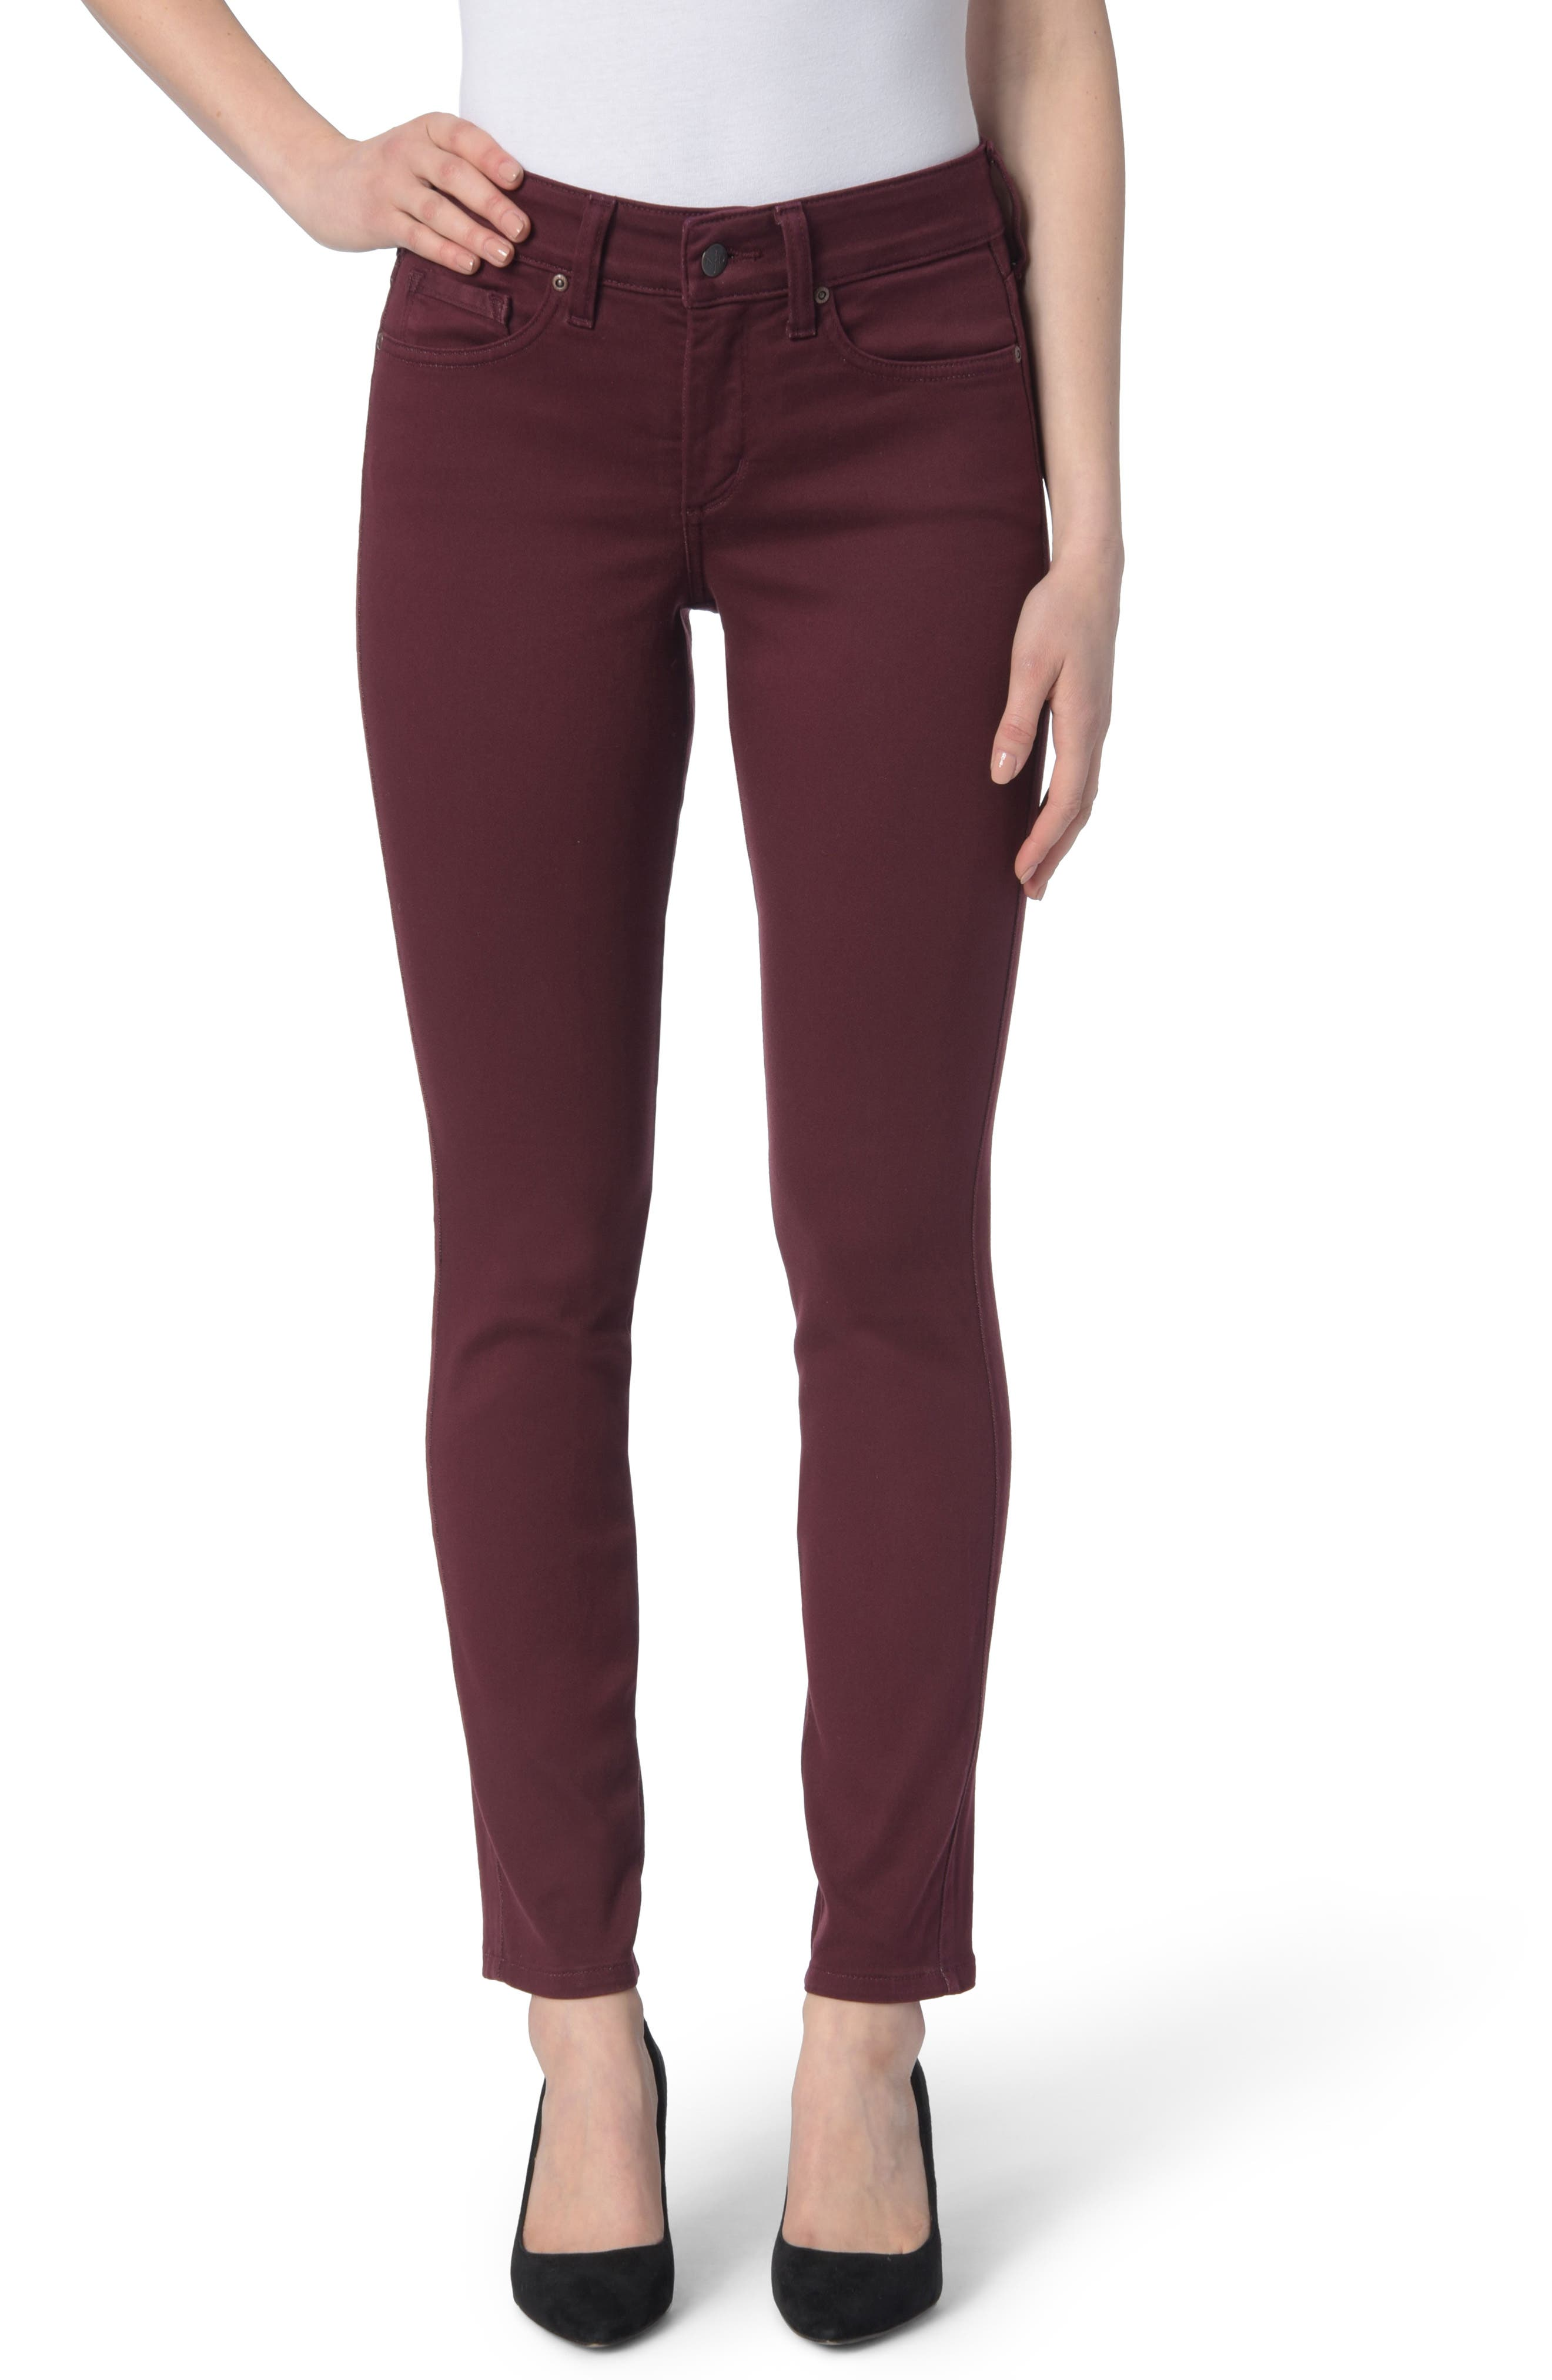 AMI COLORED STRETCH SKINNY JEANS